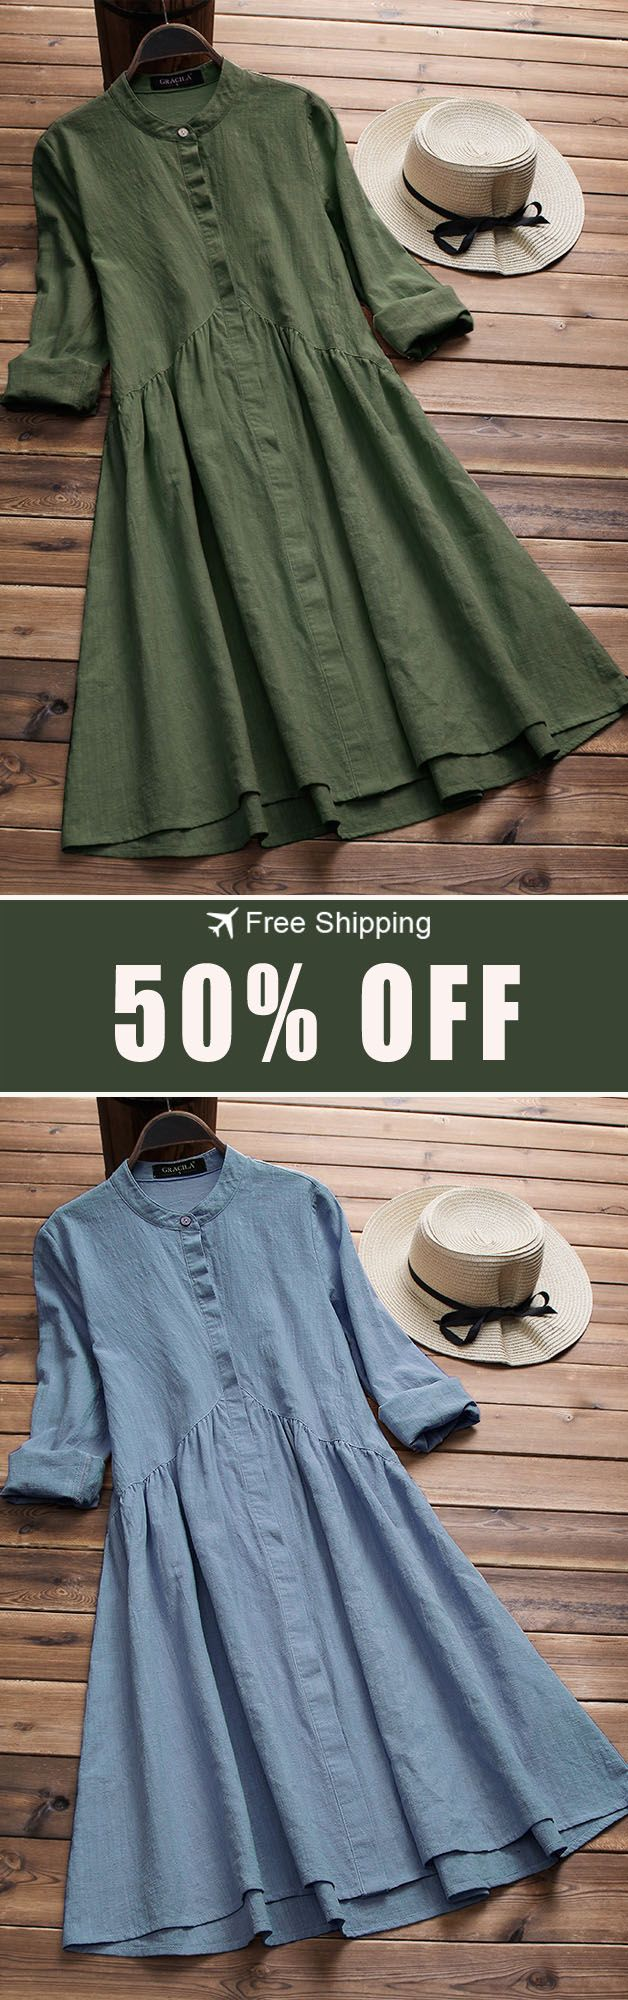 50%OFF&Free shipping. Vintage Women Cotton Stand Collar Pleated Long Sleeve Dress #thingstowear